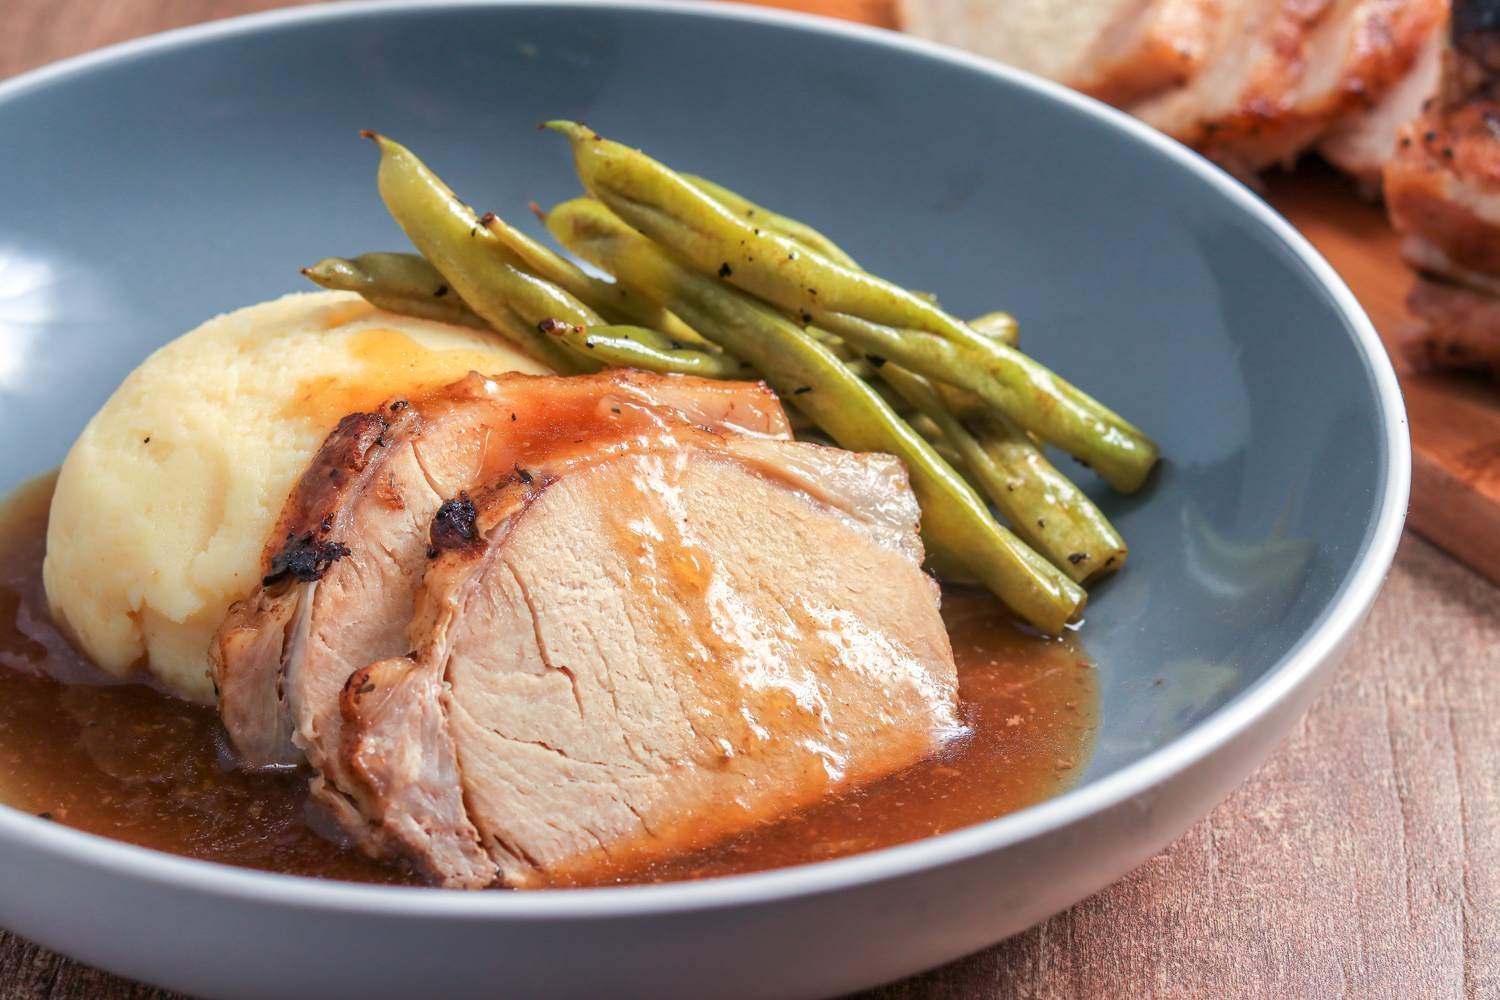 Crock pot pork loin with mashed potatoes and gravy